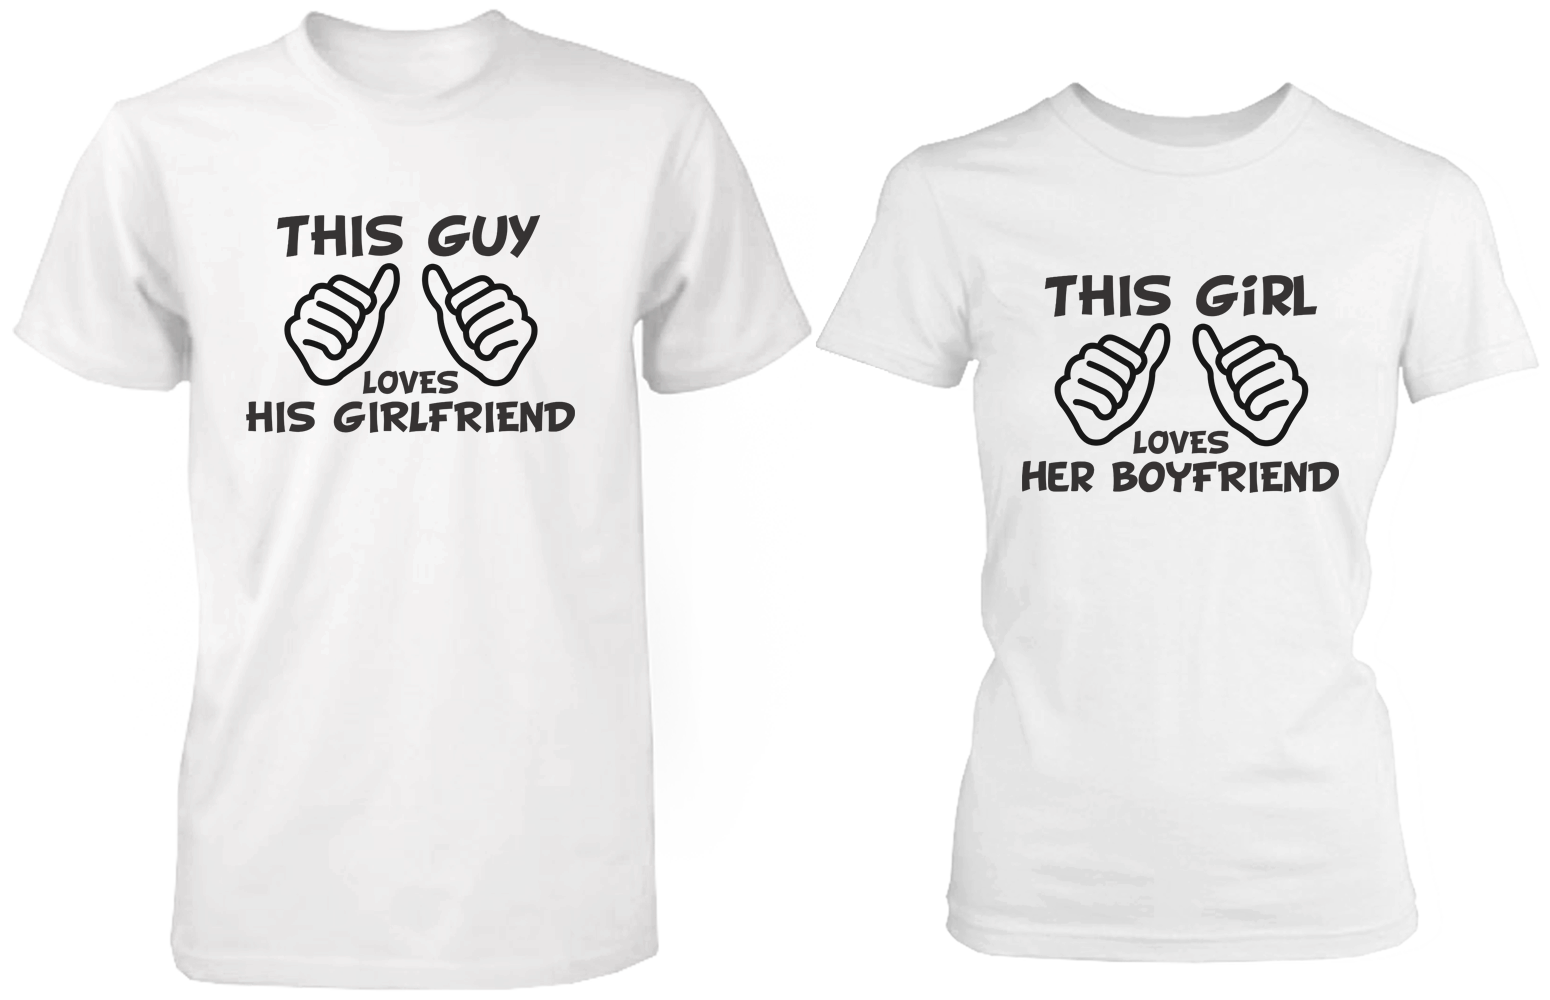 This Guy Loves His Girlfriend And This Girl Loves Her Boyfriend